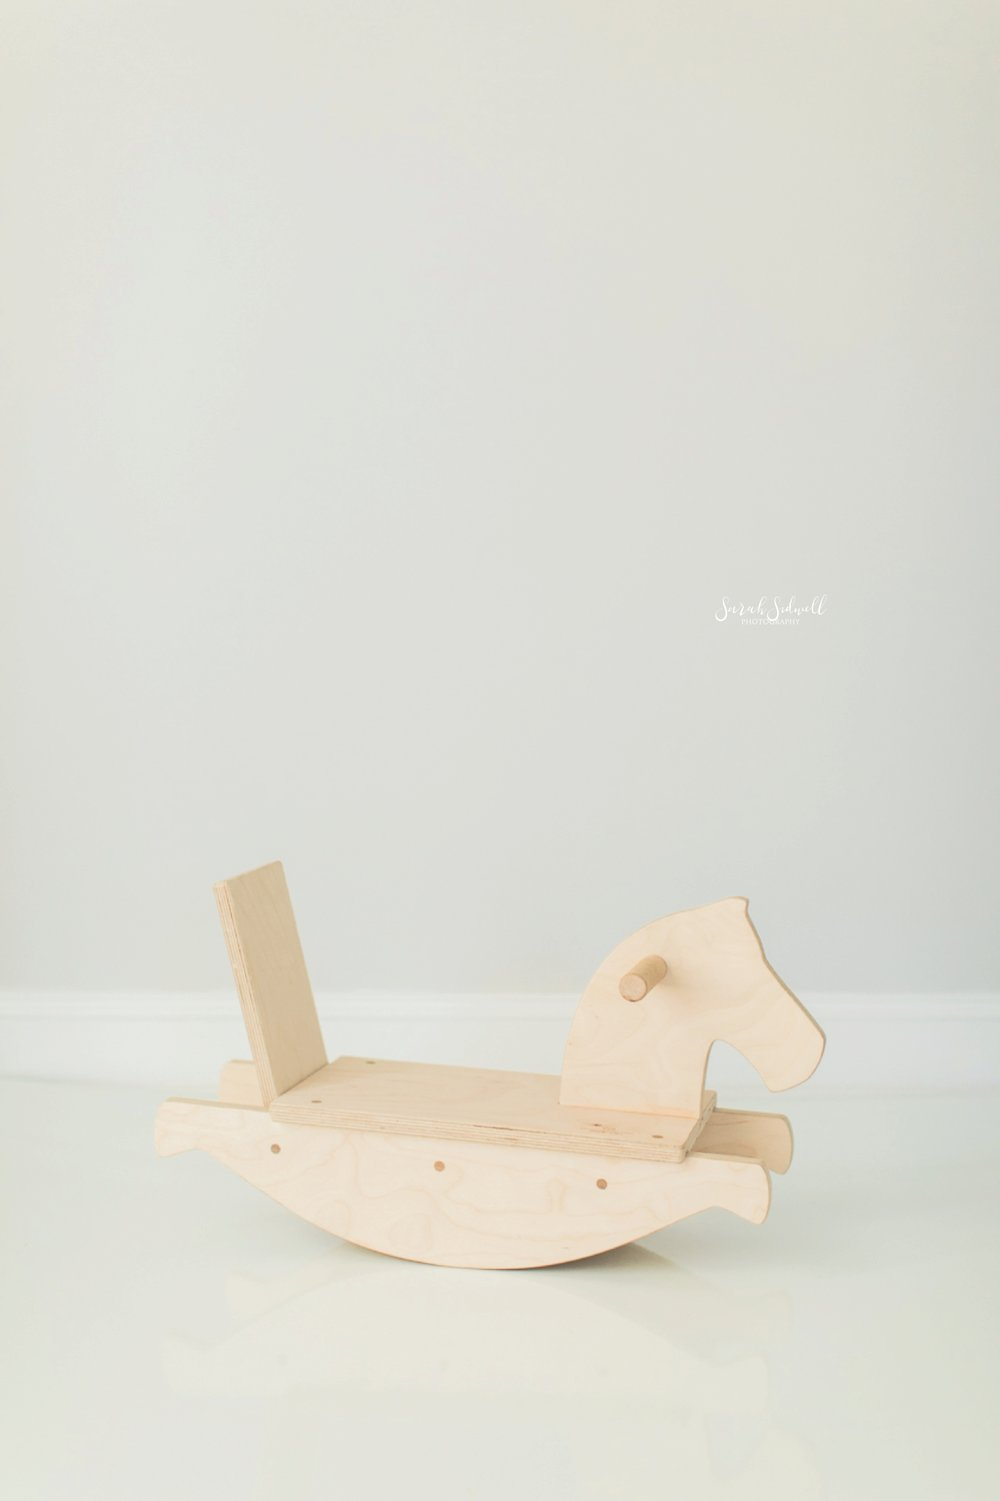 A wooden rocking horse is sitting in a white room.